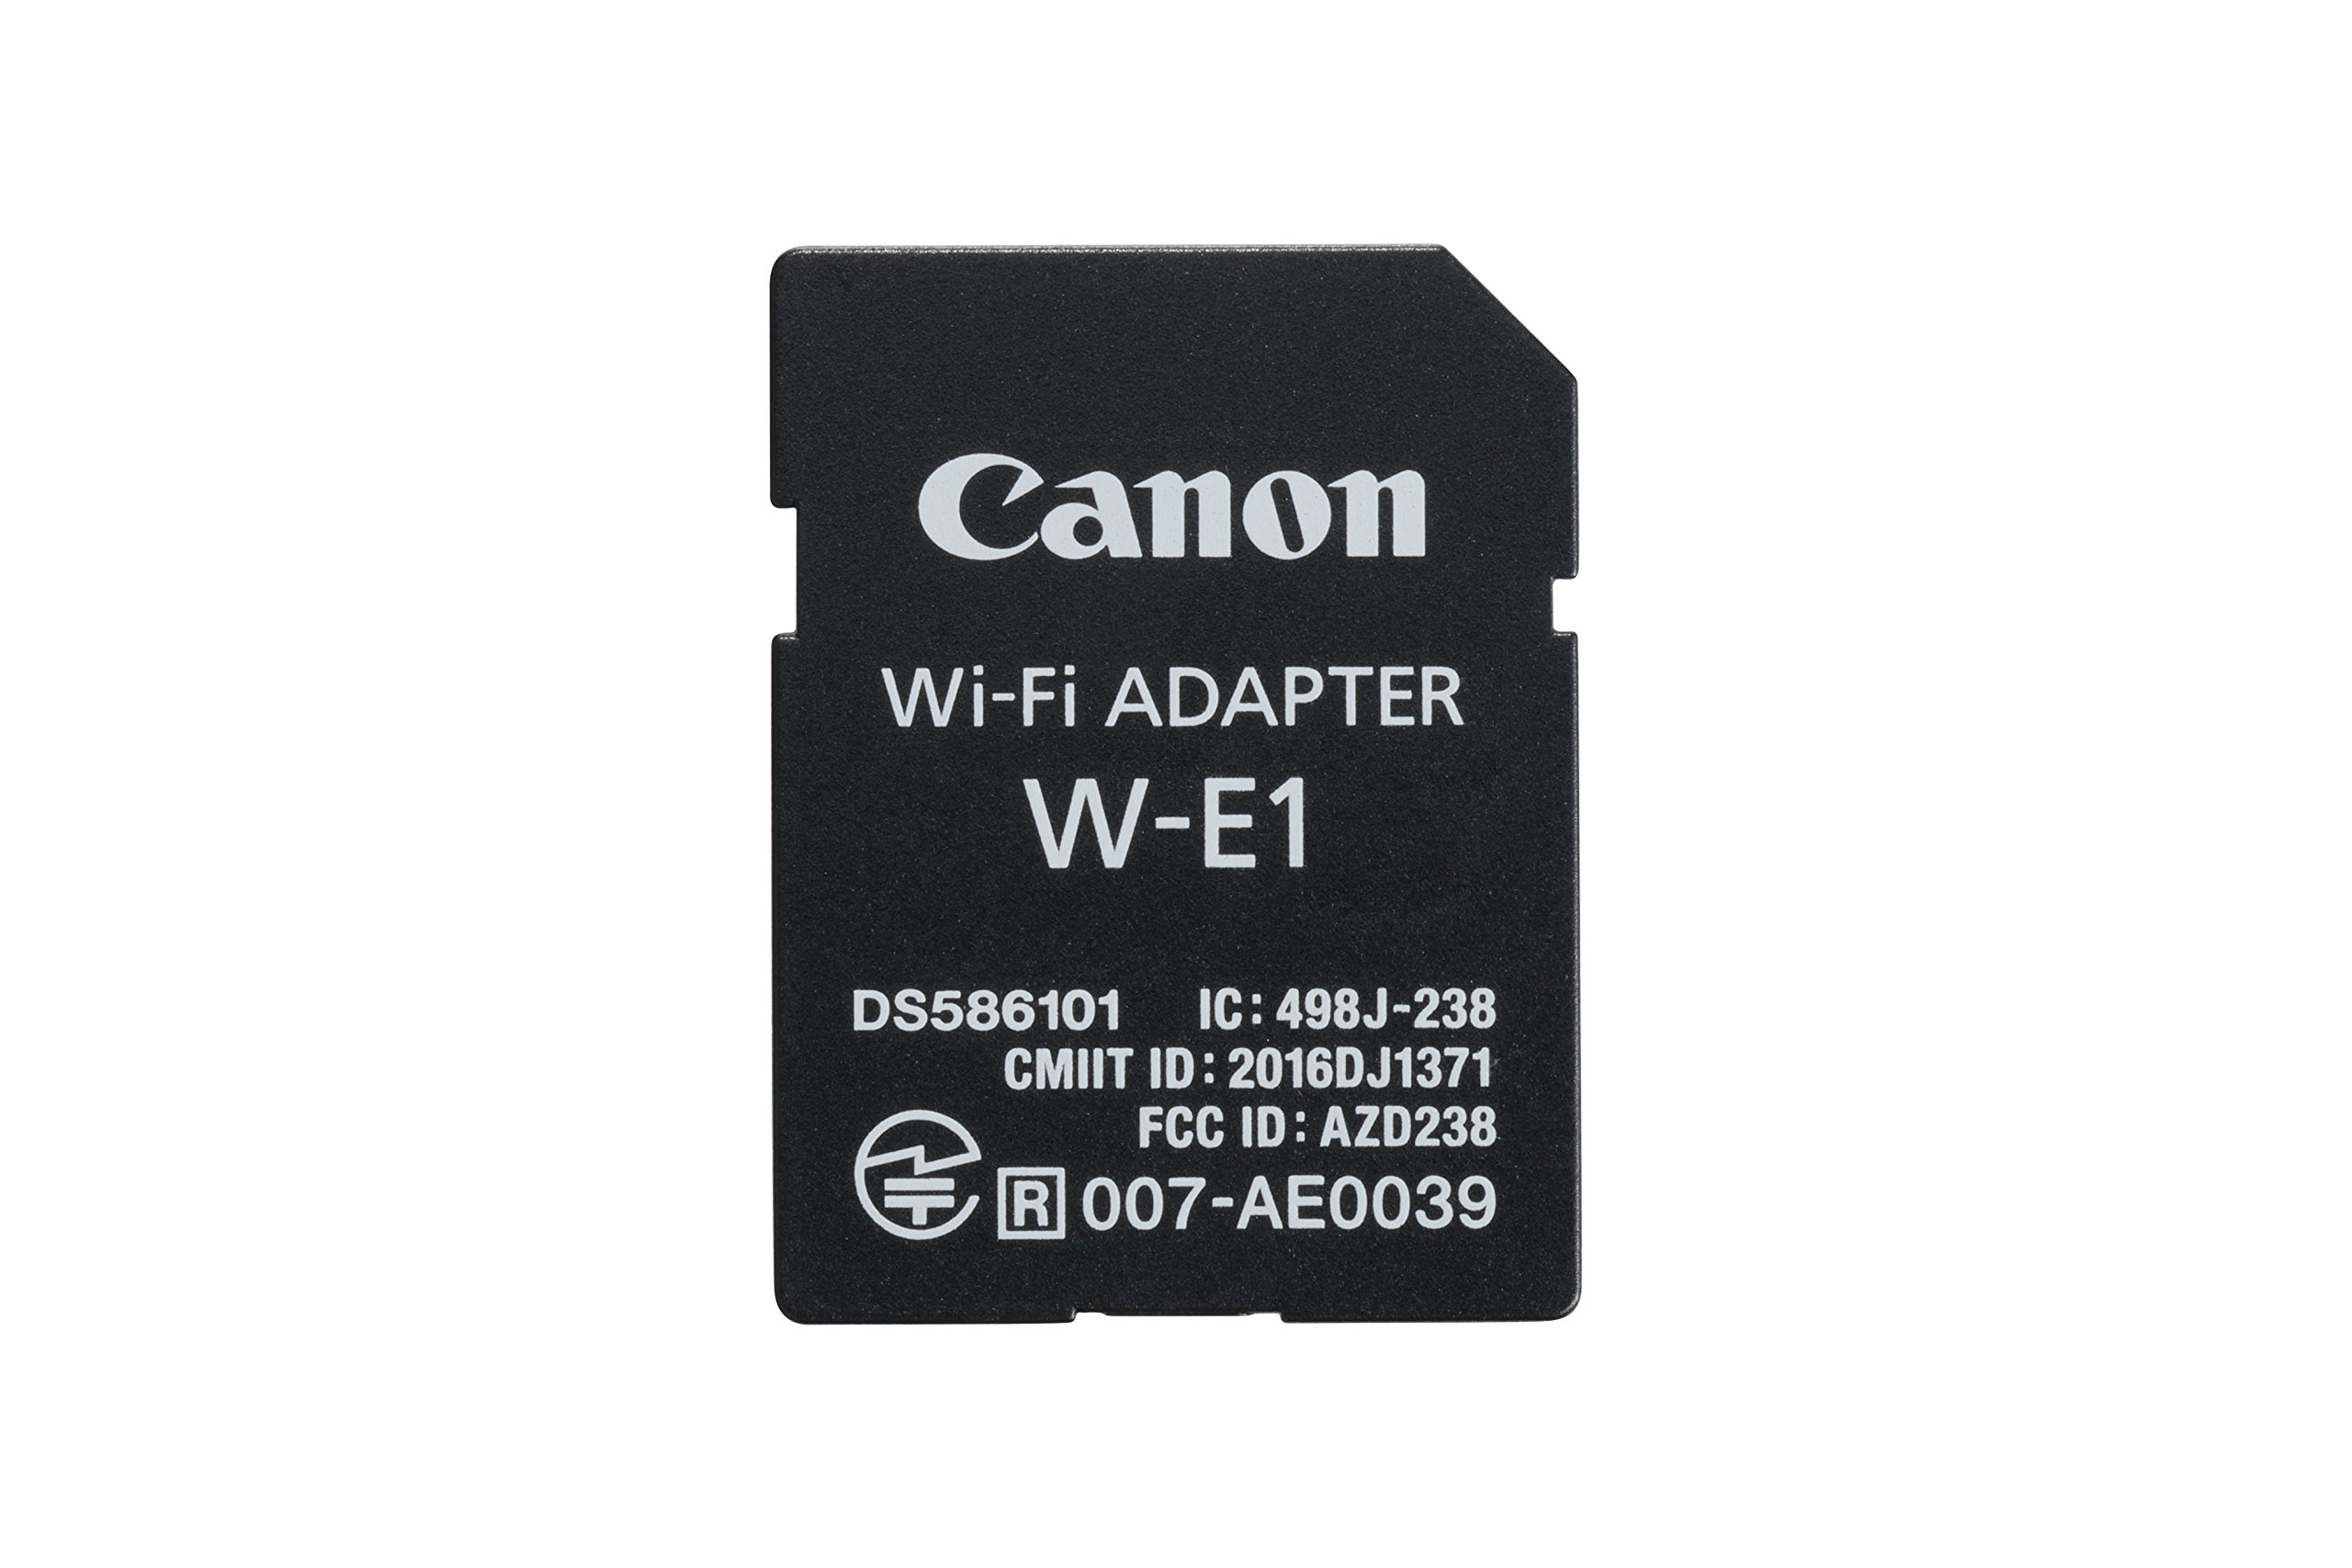 Canon Wi-Fi Adapter W-E1 (Renewed) by Canon